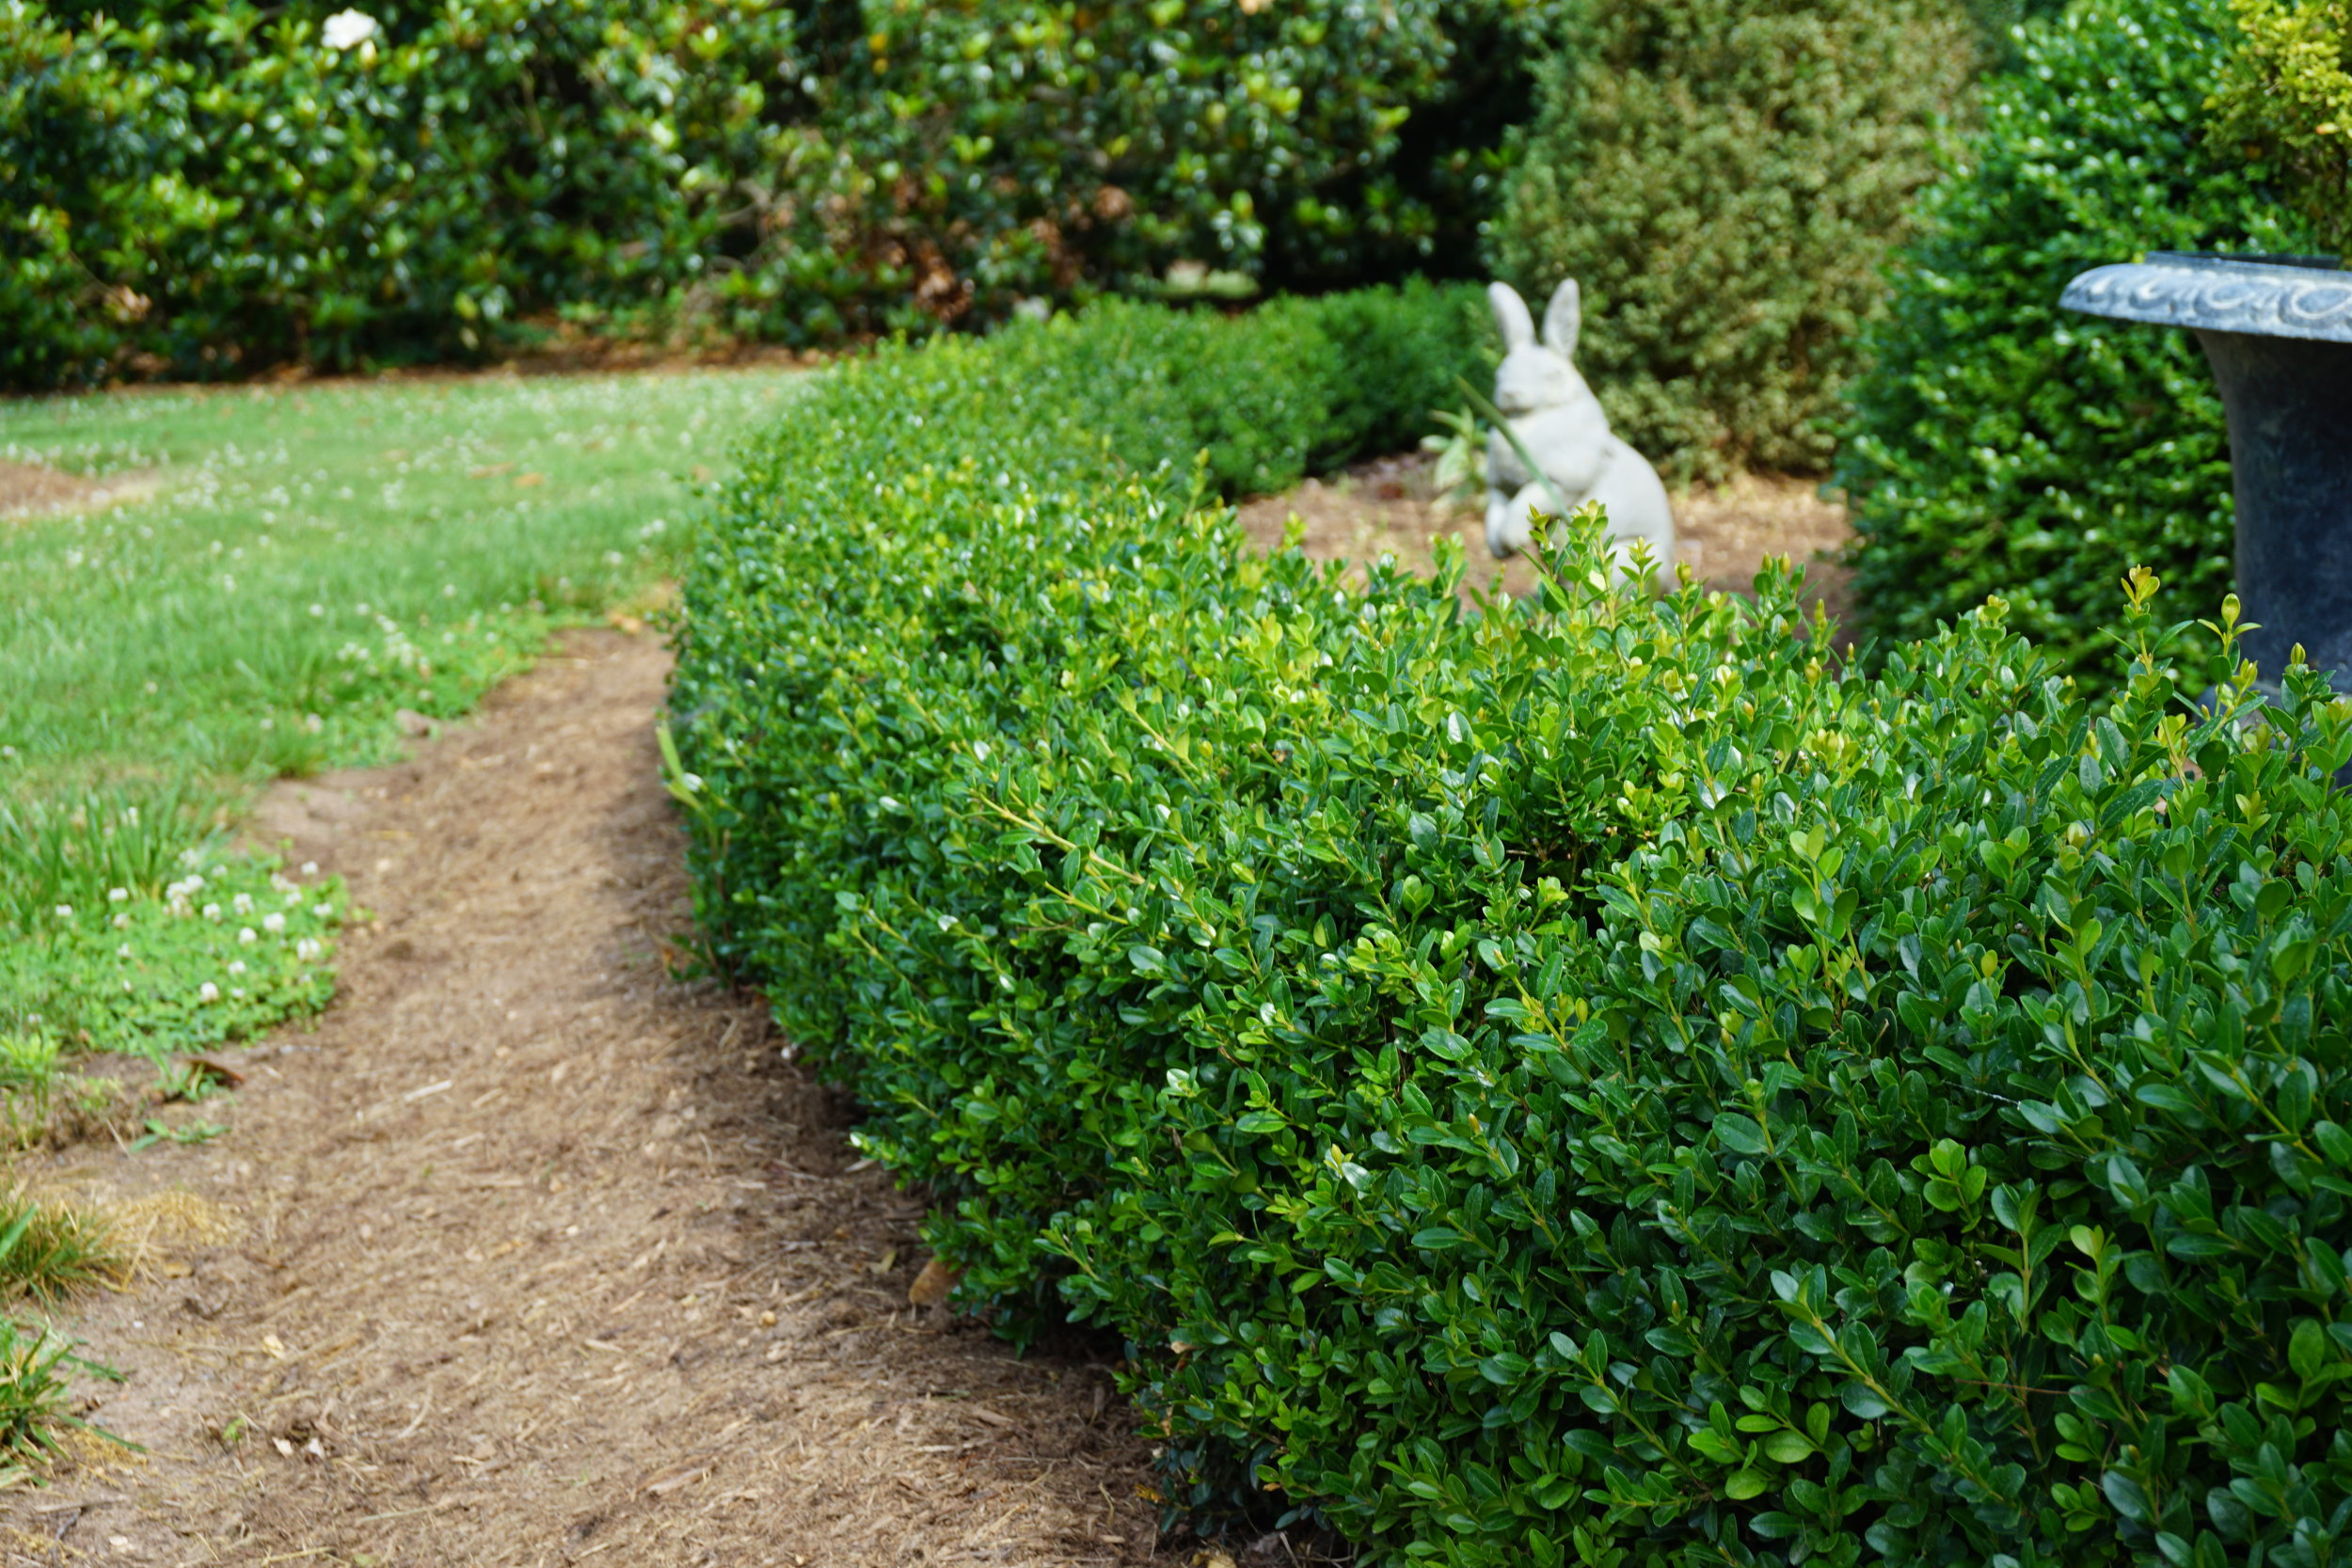 Boxwood being used as a hedge in a landscape.